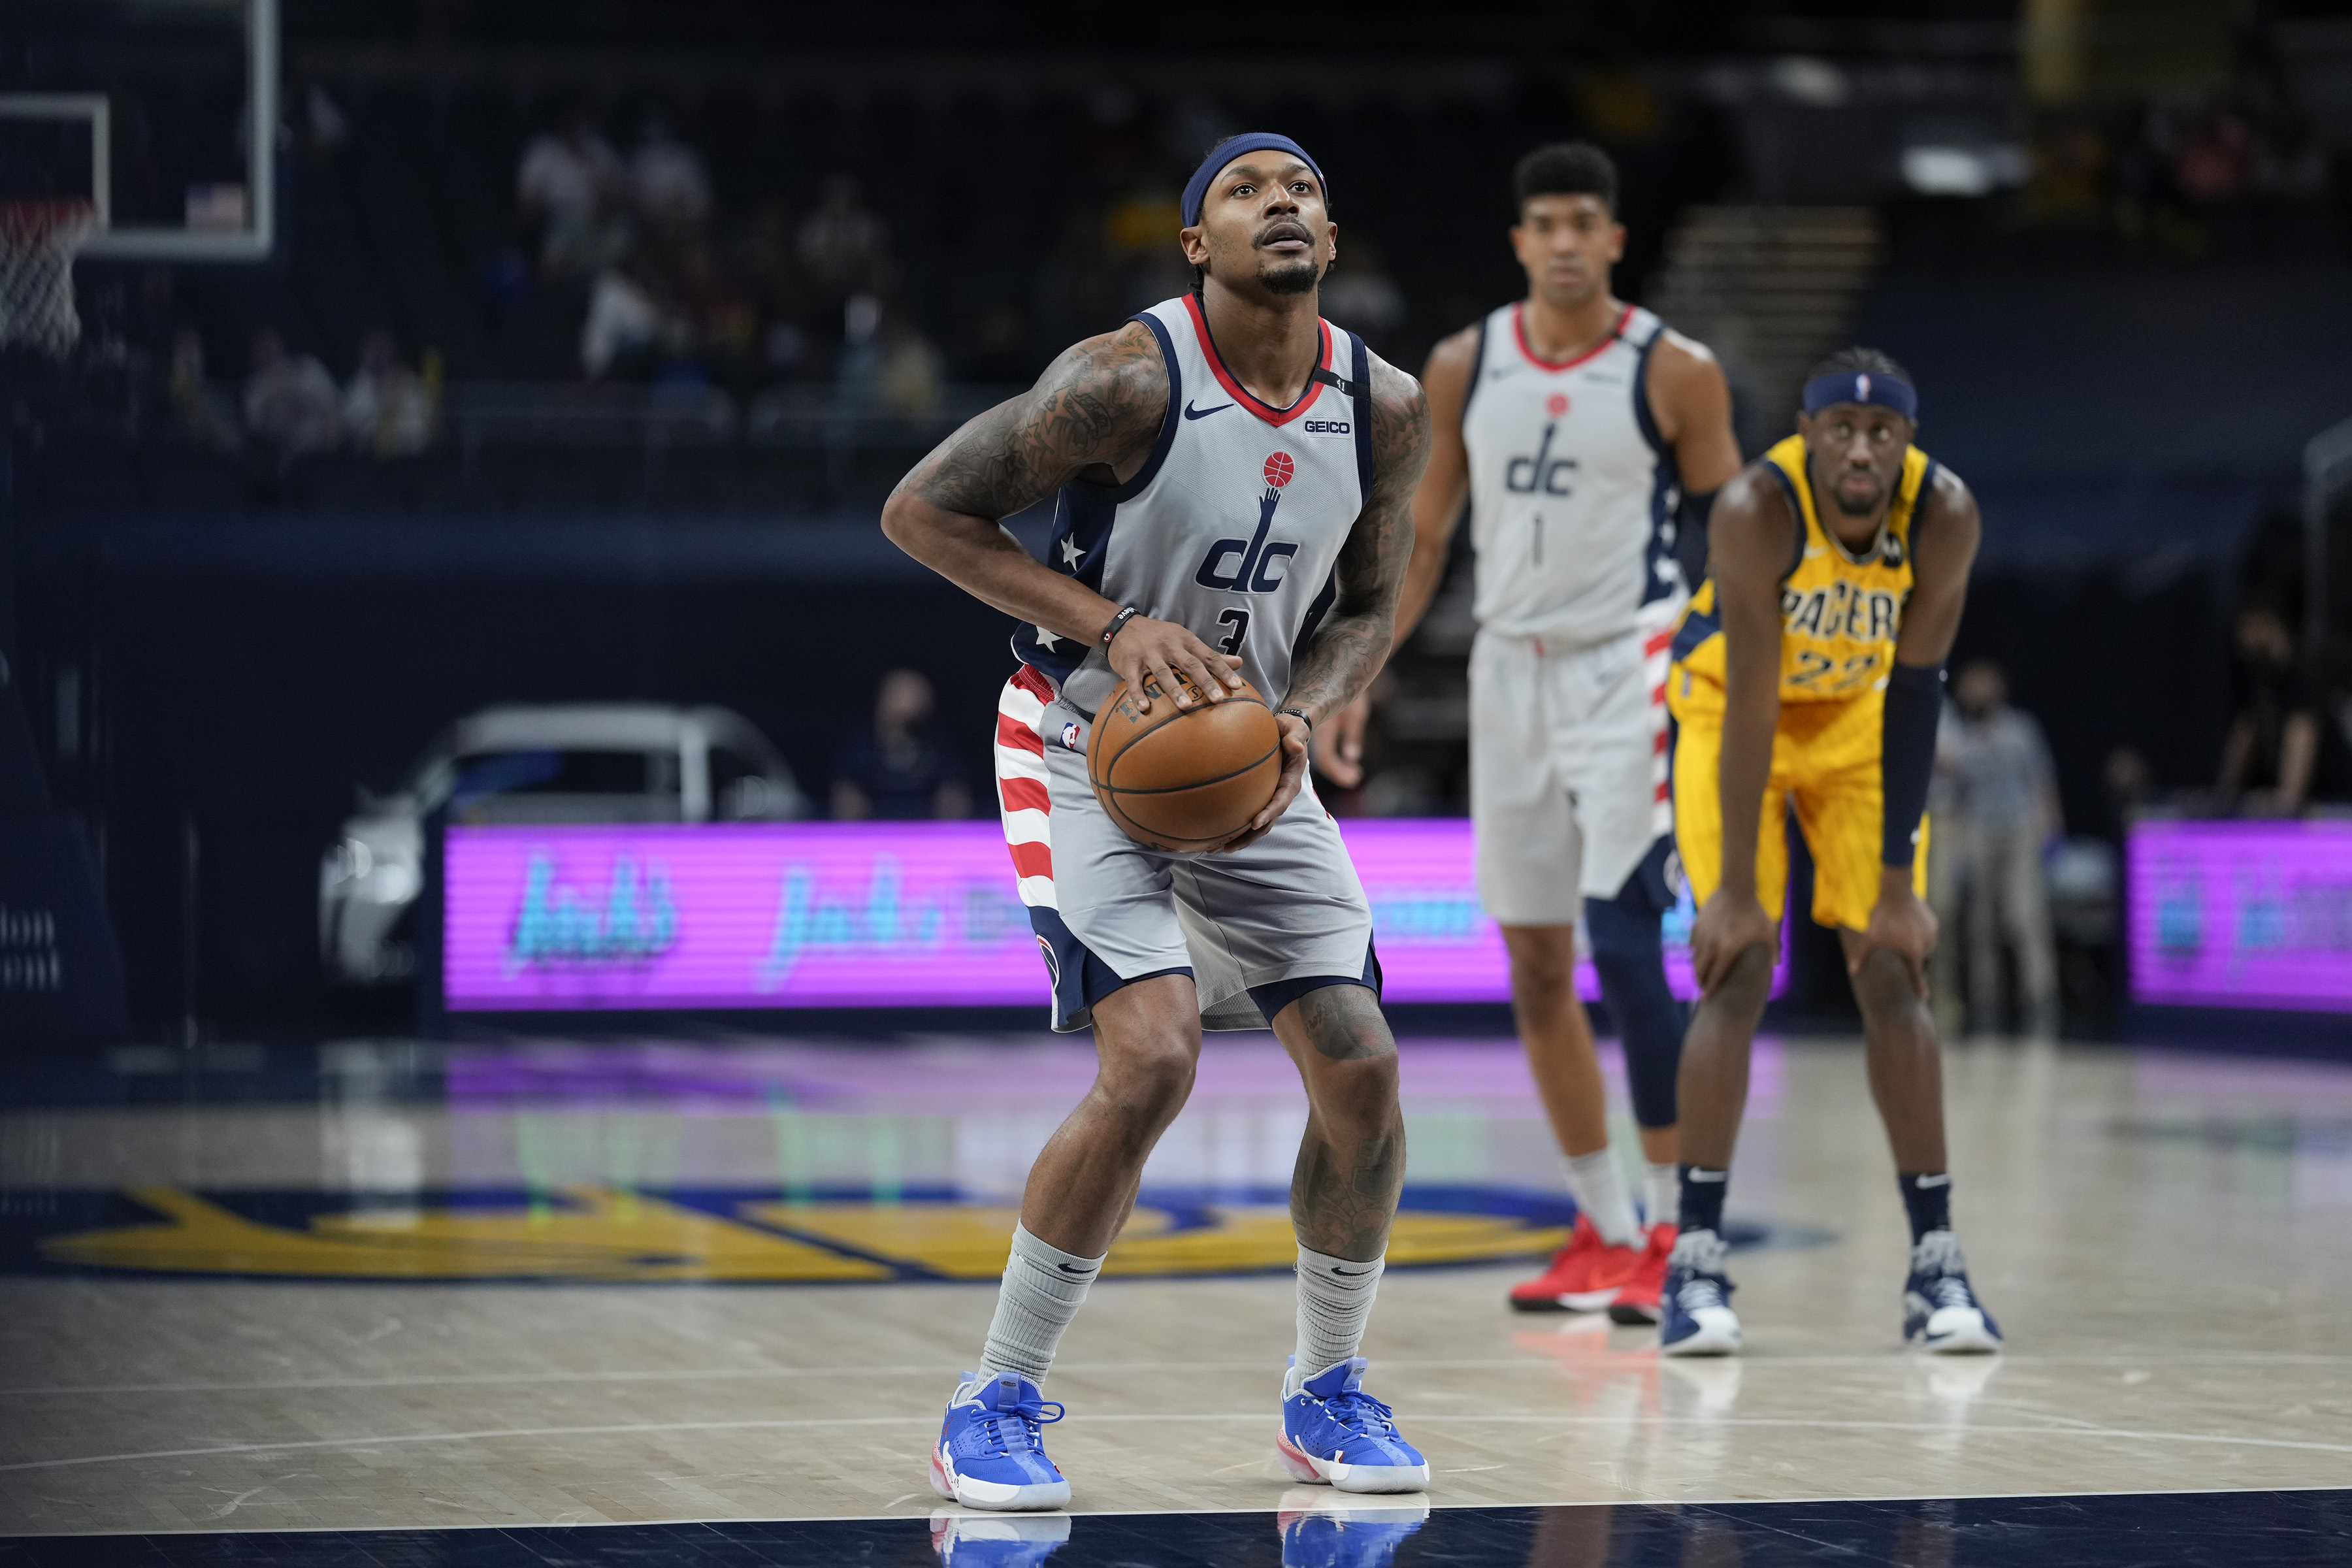 Bradley Beal of the Washington Wizards shoots a free throw during the game against the Indiana Pacers on May 8, 2021 at Bankers Life Fieldhouse in Indianapolis, Indiana.